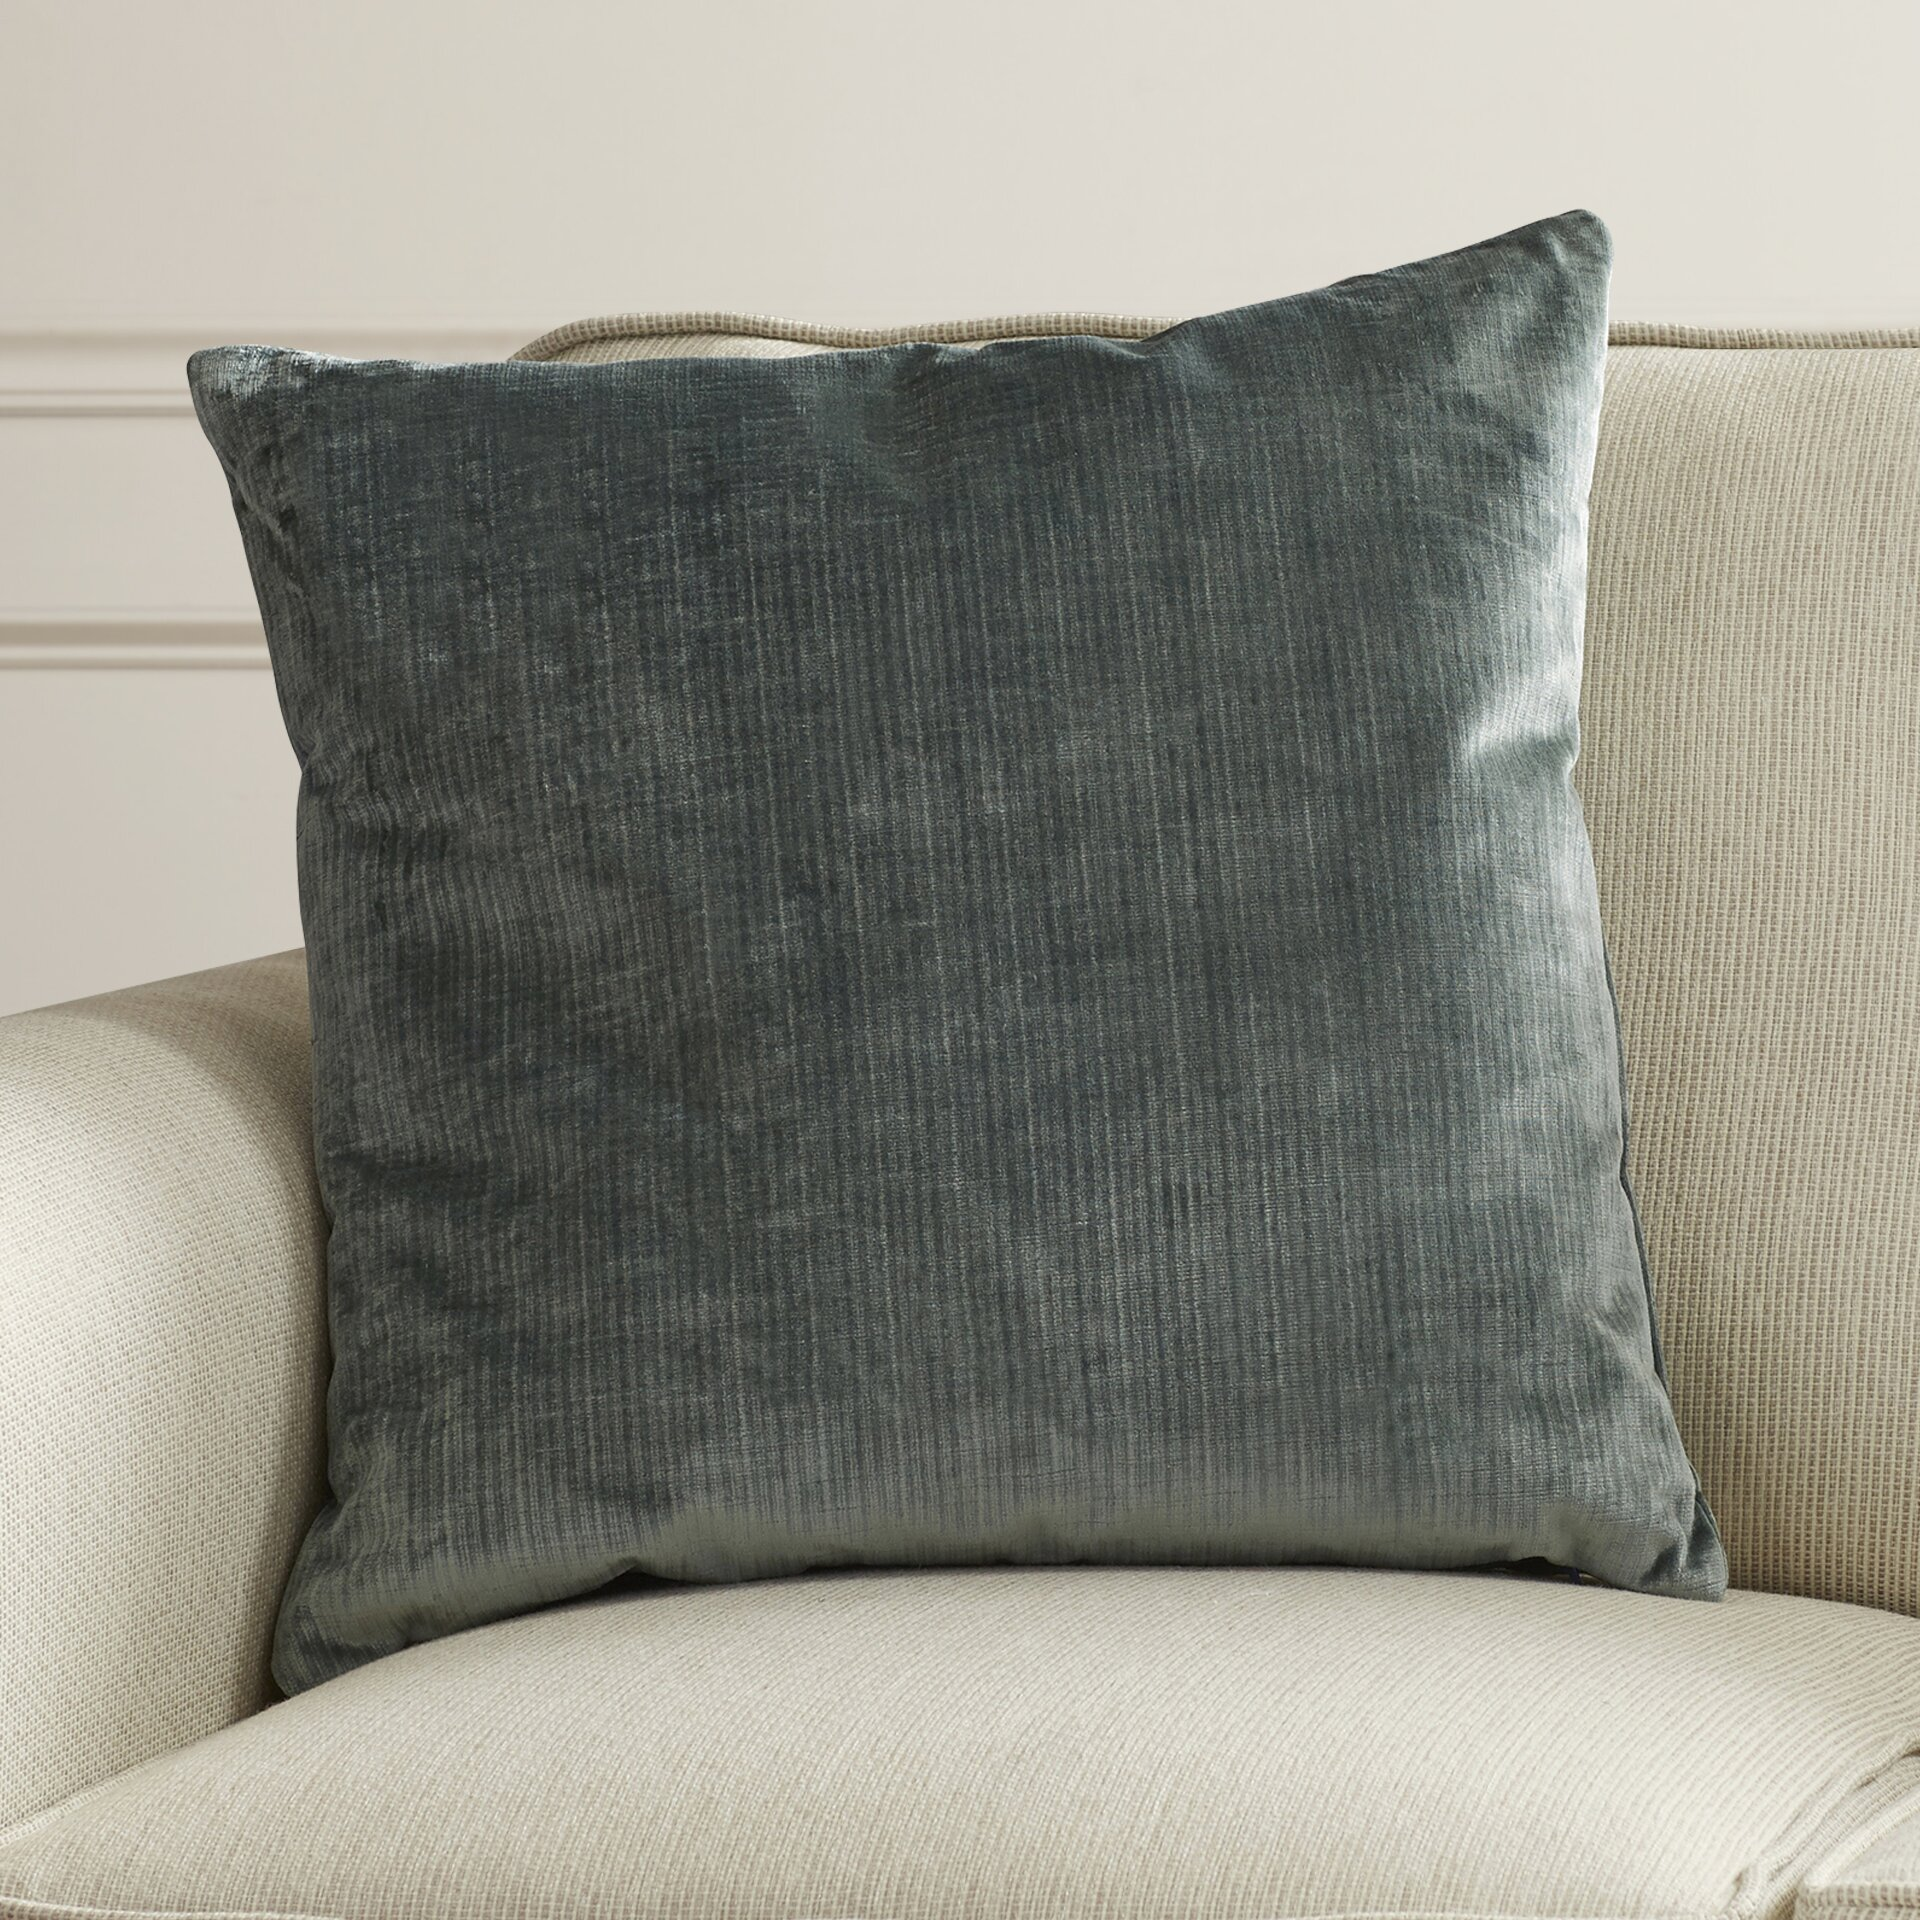 Throw Pillows Pictures : House of Hampton Ertvelde Plain Velvet Throw Pillow & Reviews Wayfair